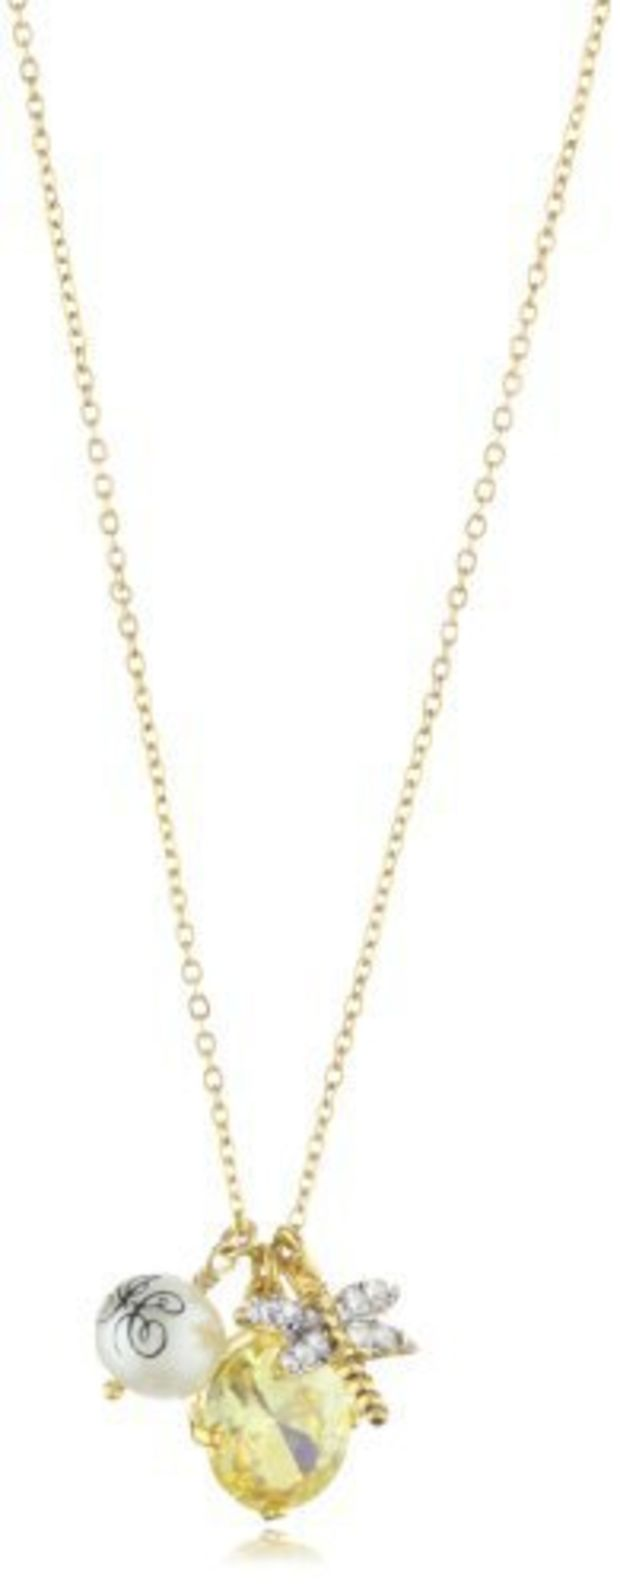 f995d32032f http://wanelo.com/p/586246/white-druzy-necklace-in-gold-small-size ...